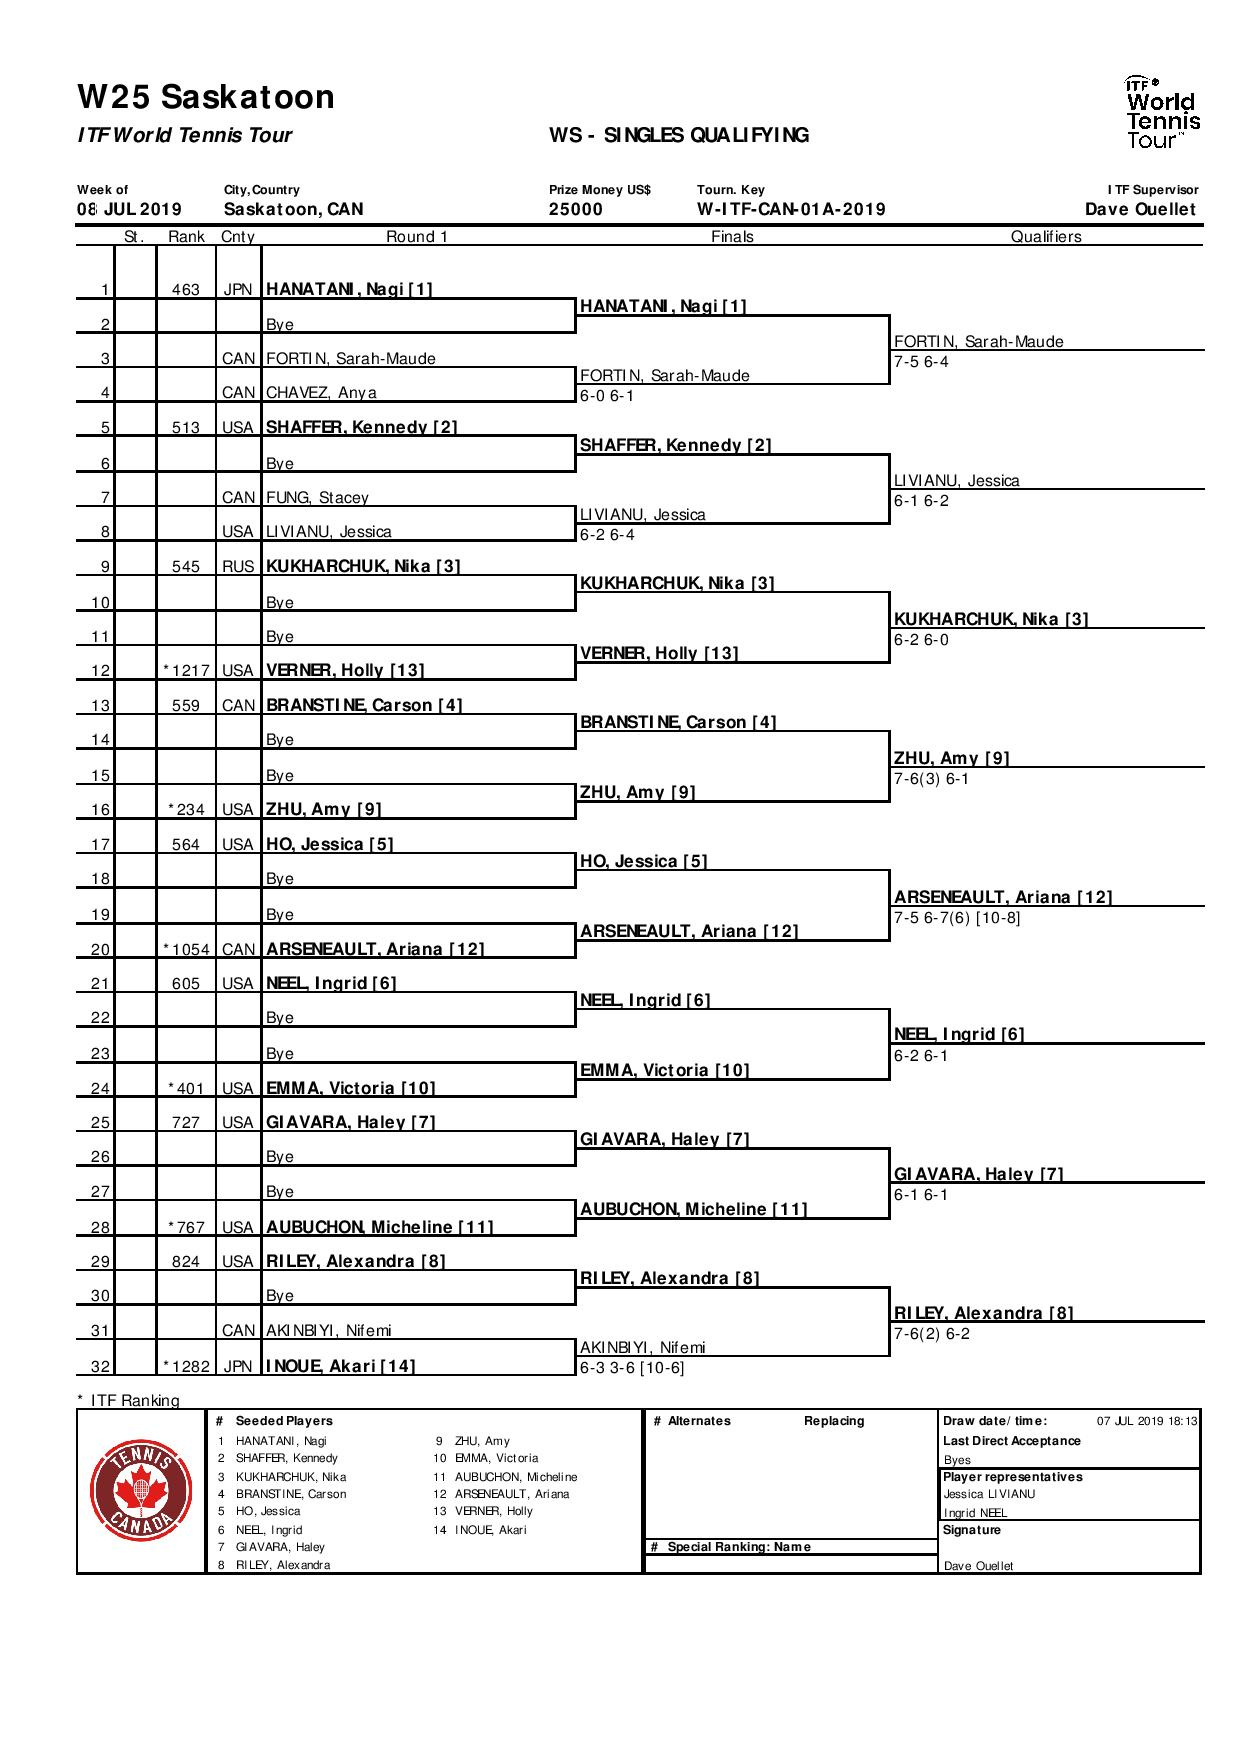 W-ITF-CAN-01A-2019 Qualifying Singles Draw-page-001.jpg